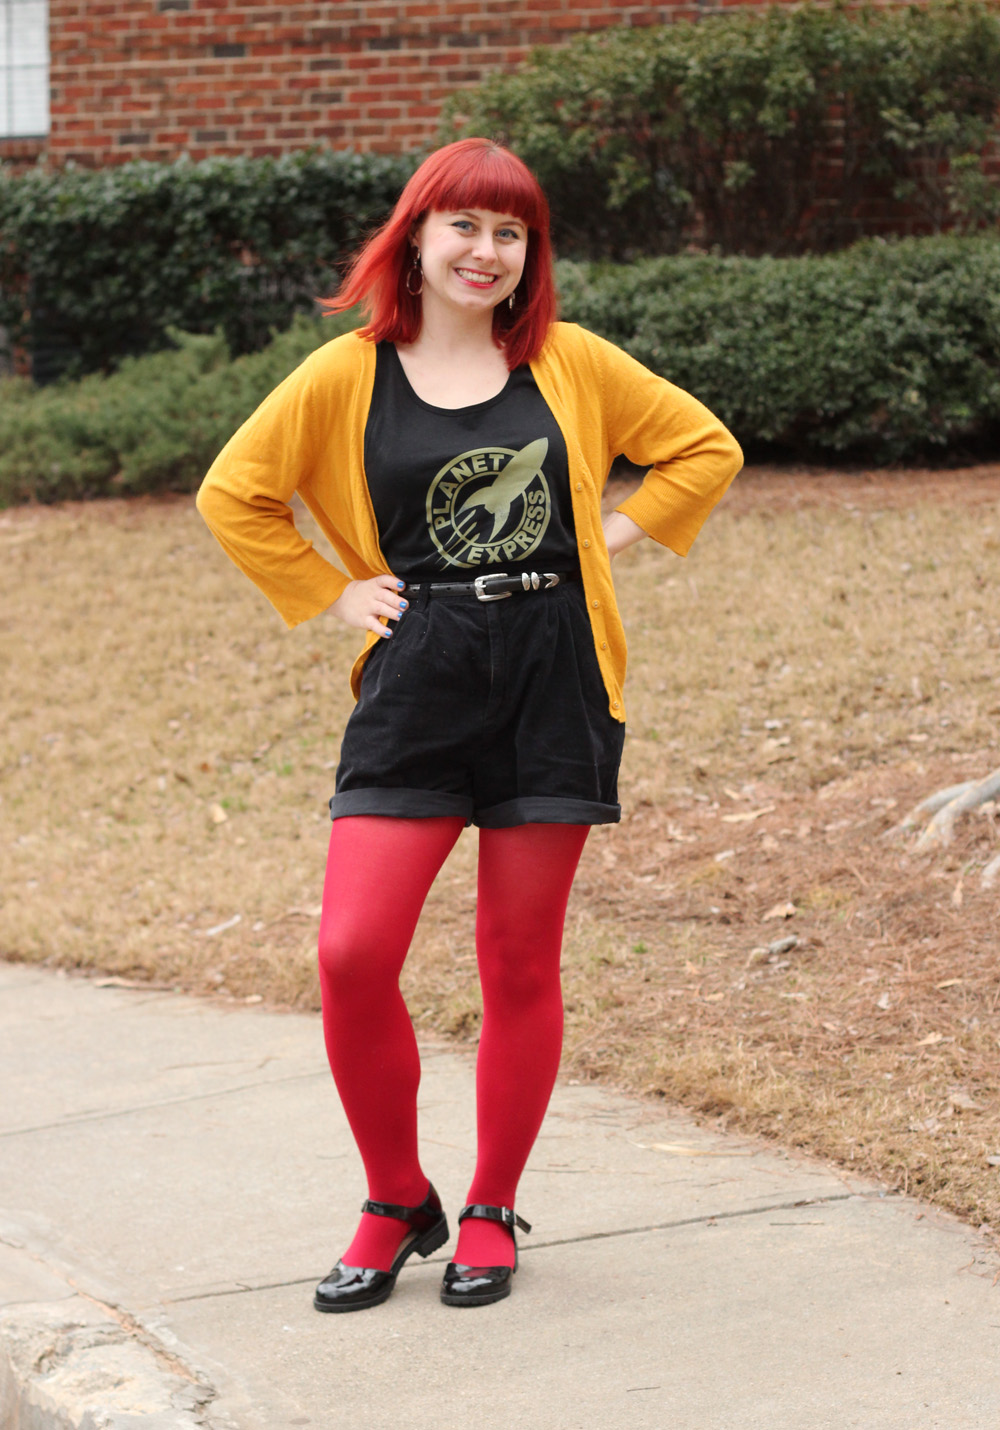 Mustard Yellow Cardigan, Planet Express Futurama Tank Top, Corduroy Shorts, Red Tights, and Patent Mary Janes